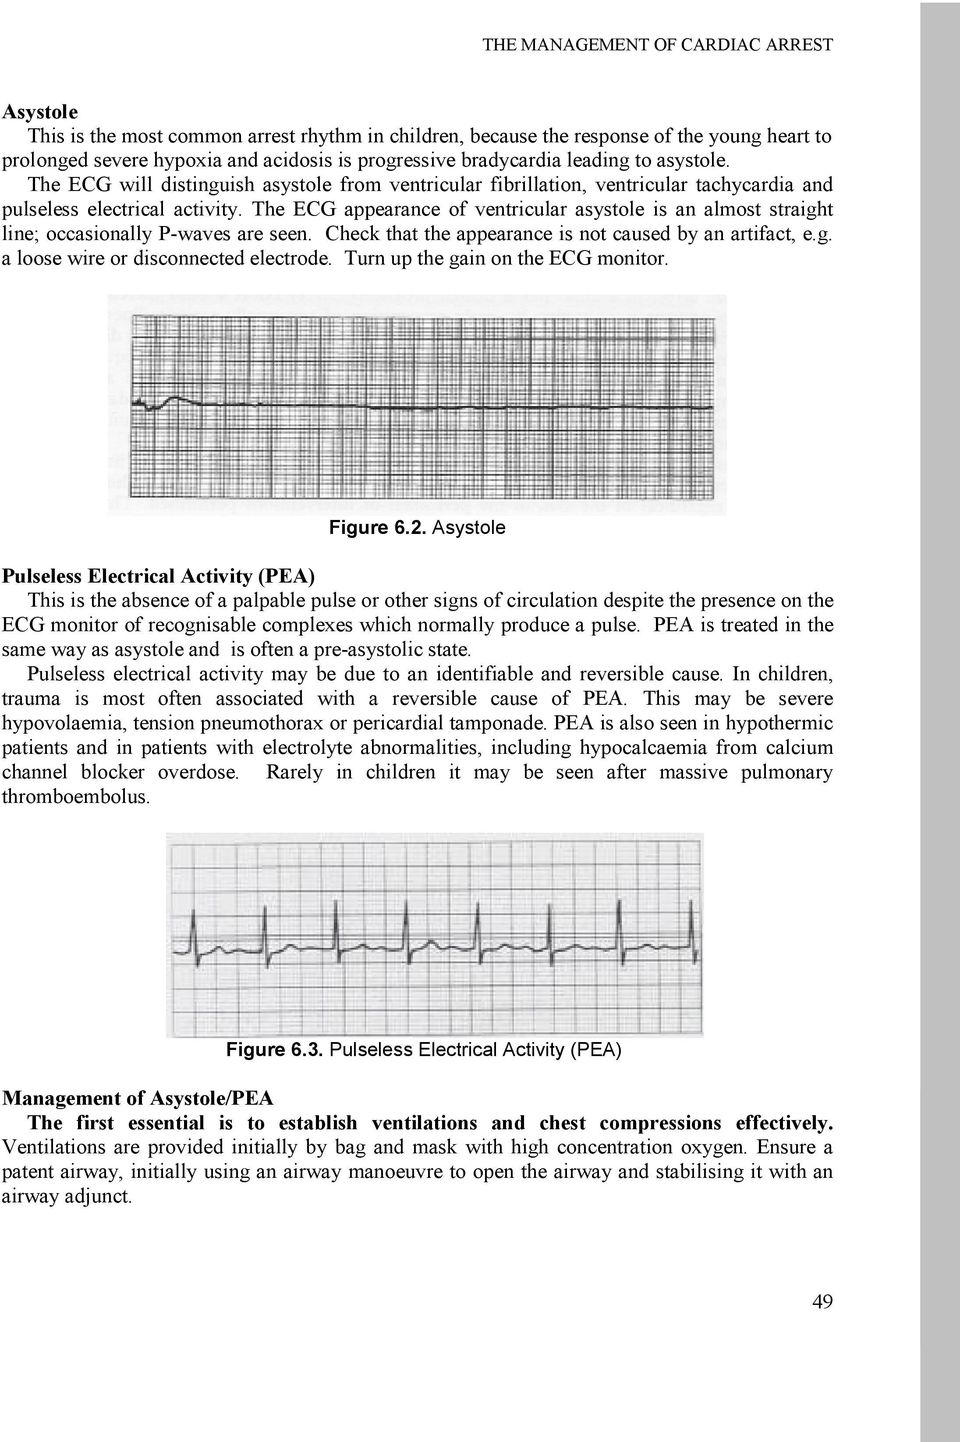 The ECG appearance of ventricular asystole is an almost straight line; occasionally P-waves are seen. Check that the appearance is not caused by an artifact, e.g. a loose wire or disconnected electrode.